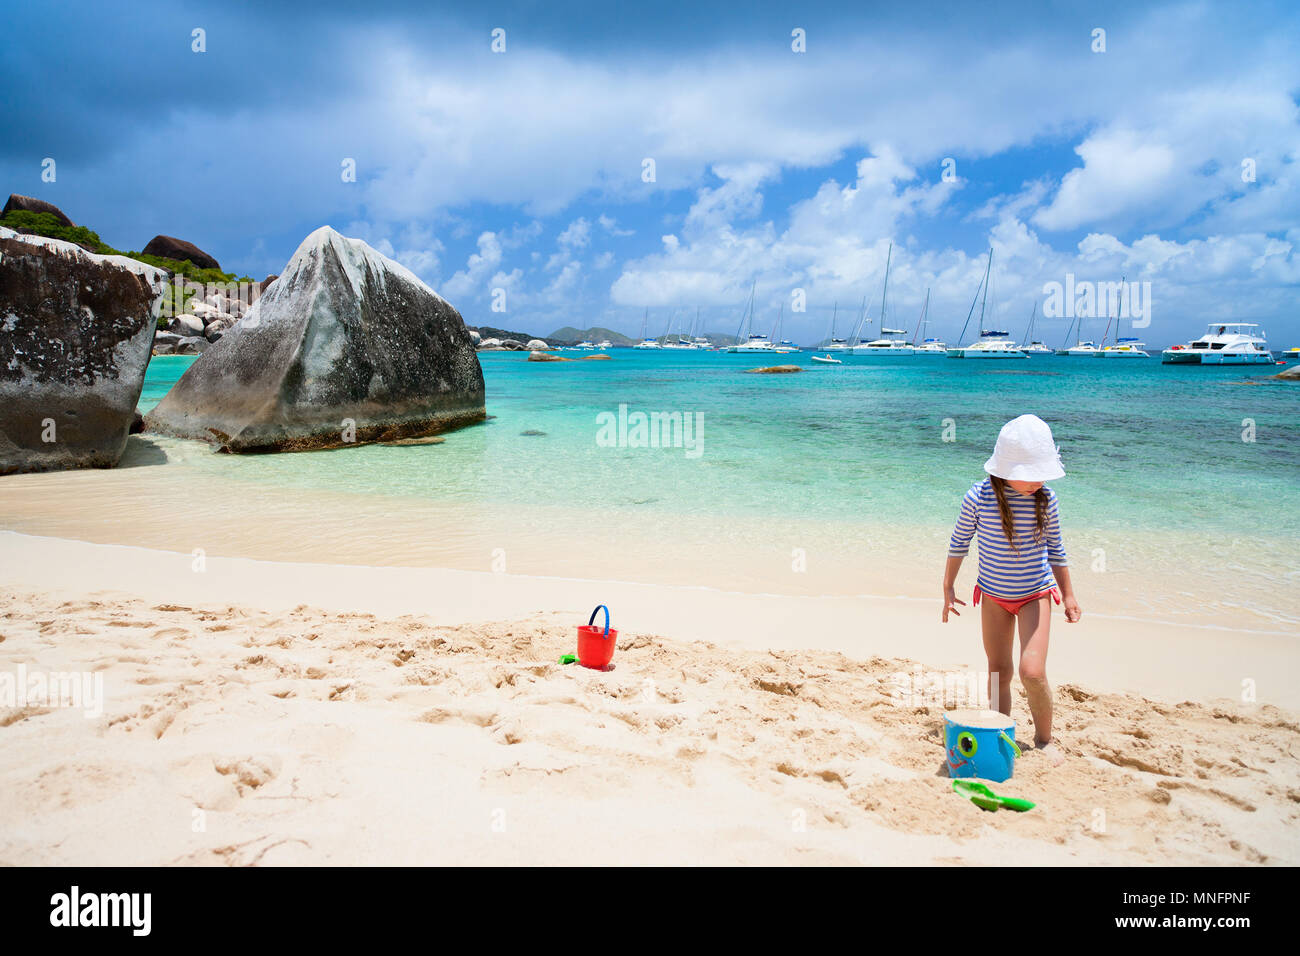 Adorable little girl wearing rash guard for sun protection at beach during summer vacation - Stock Image